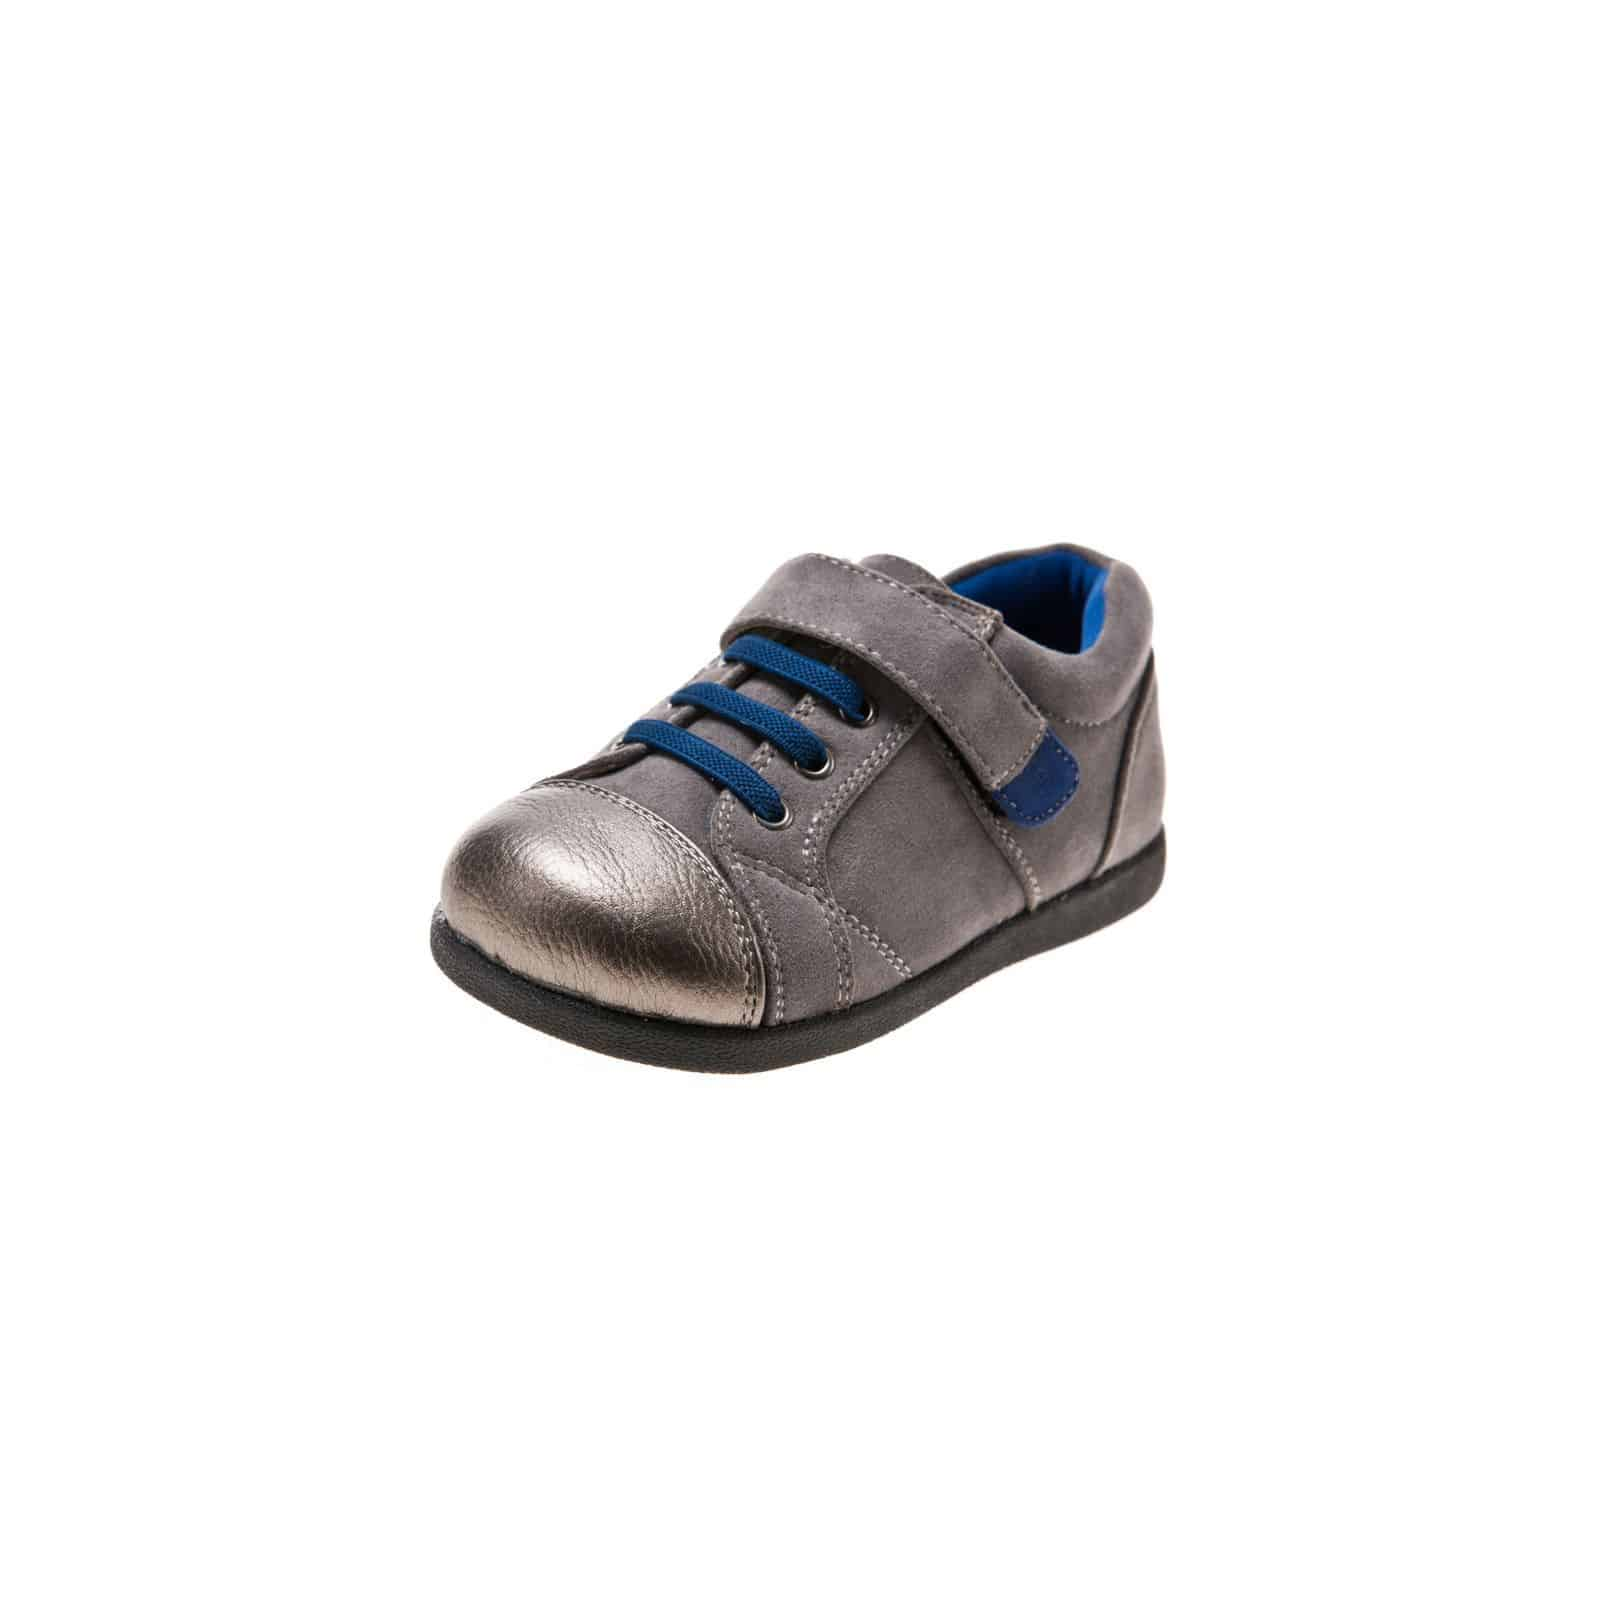 Chaussures - Bas-tops Et Sifflets Baskets q0Vj7DZcNG